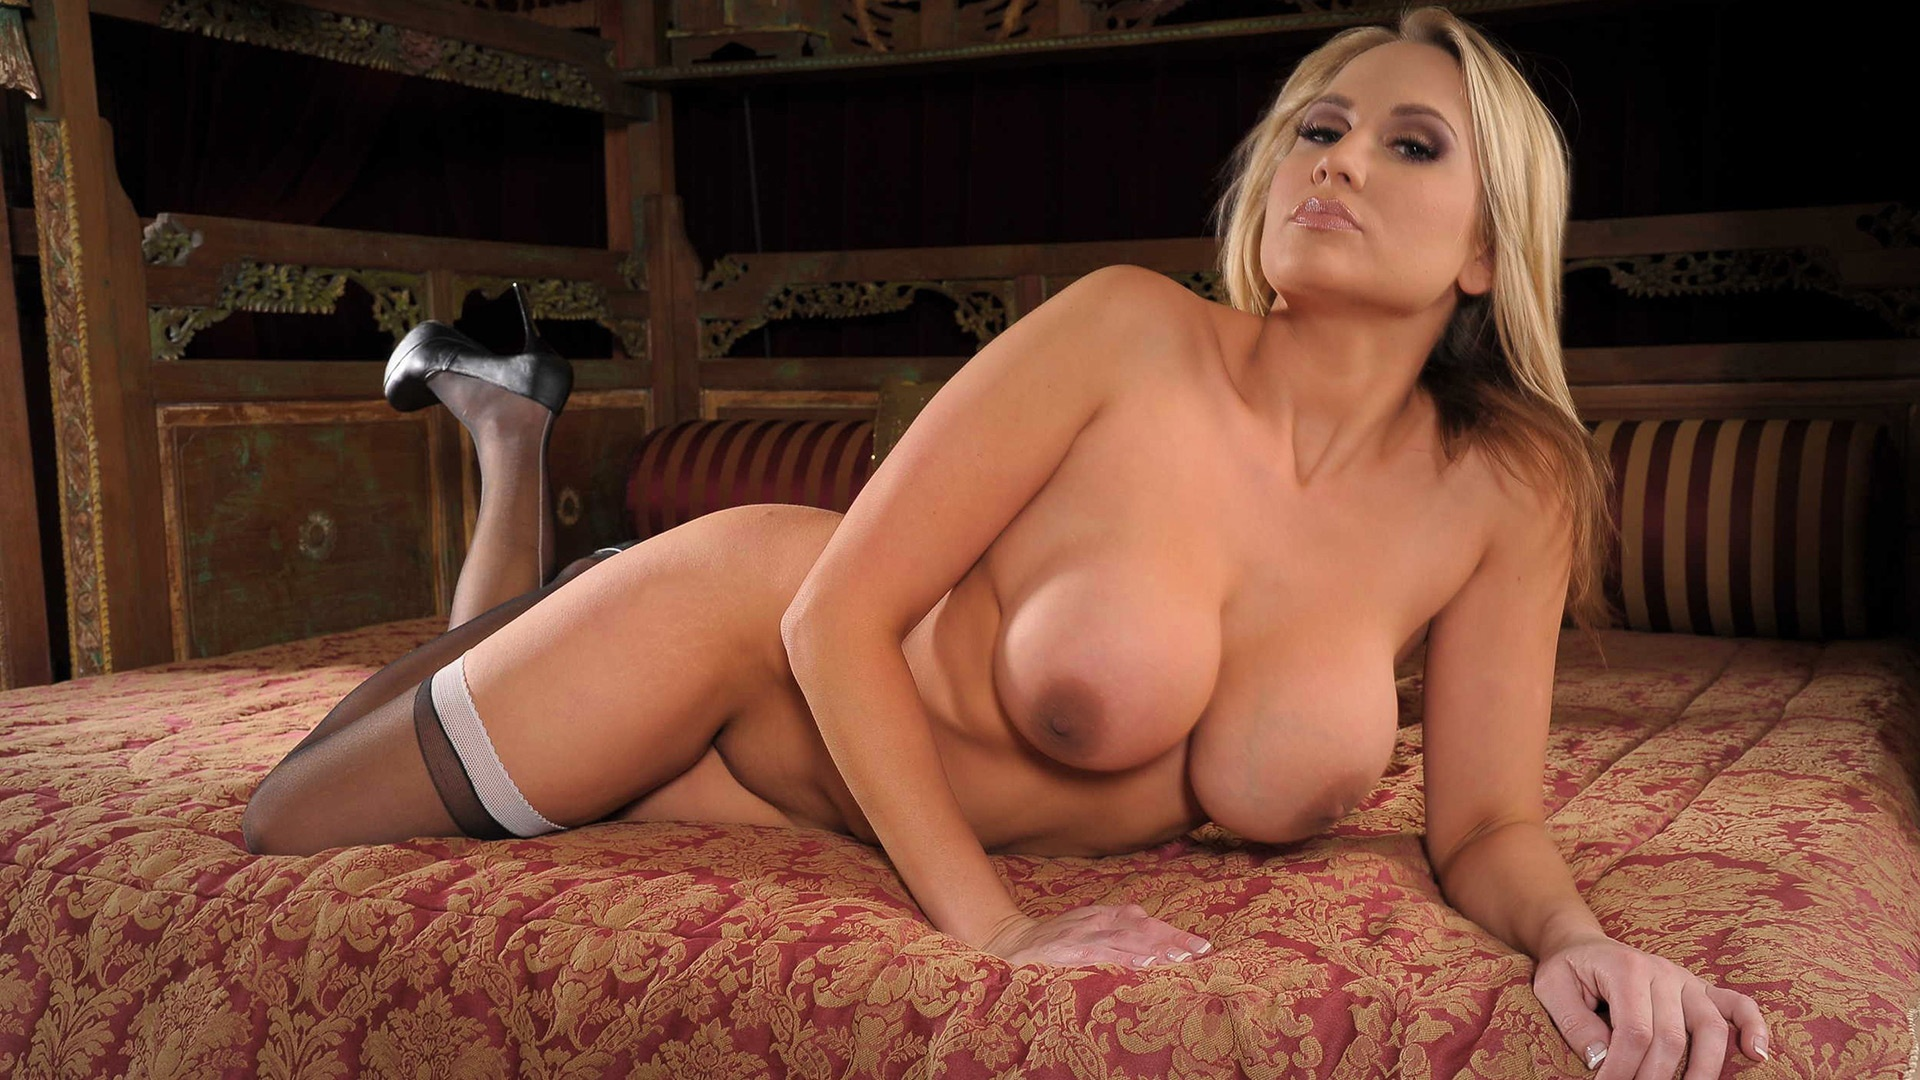 alanah rae hot curves blonde pornstar nude on the bed